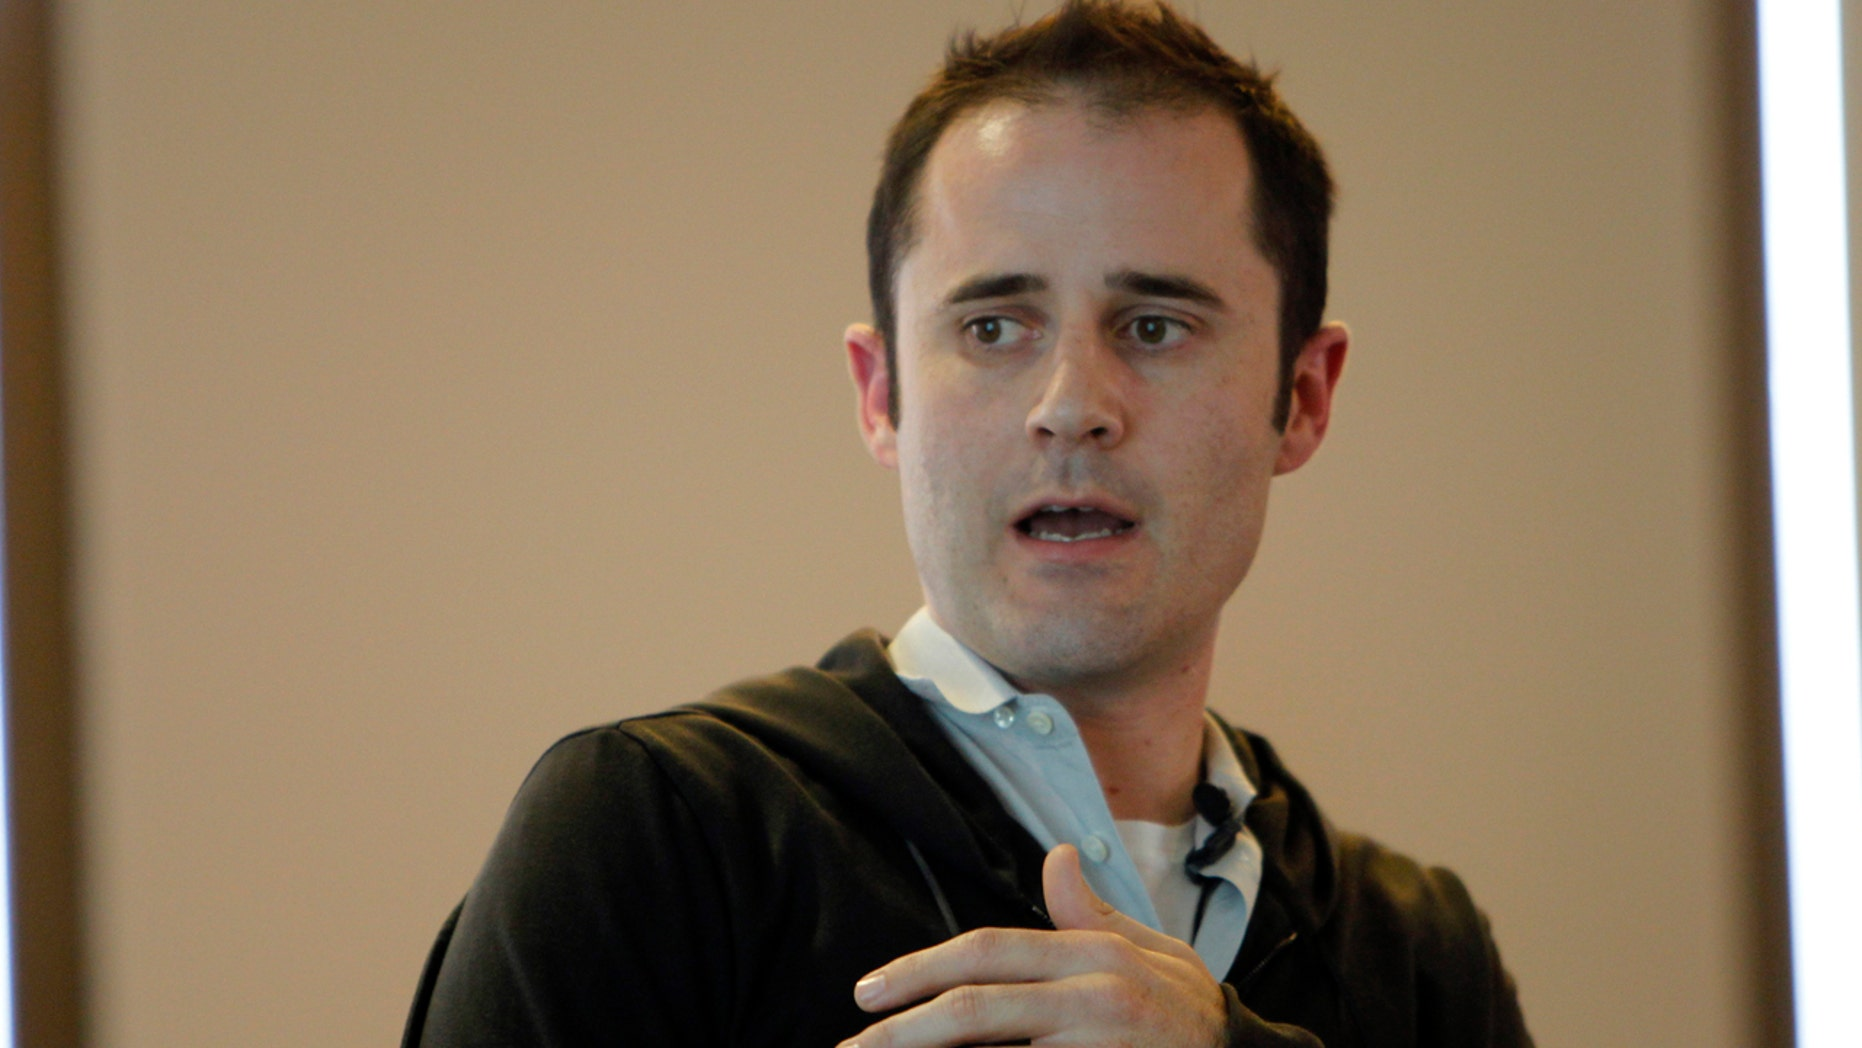 Twitter CEO Evan Williams speaks at a news conference as the website Twitter.com is launched in San Francisco, California September 14, 2010.